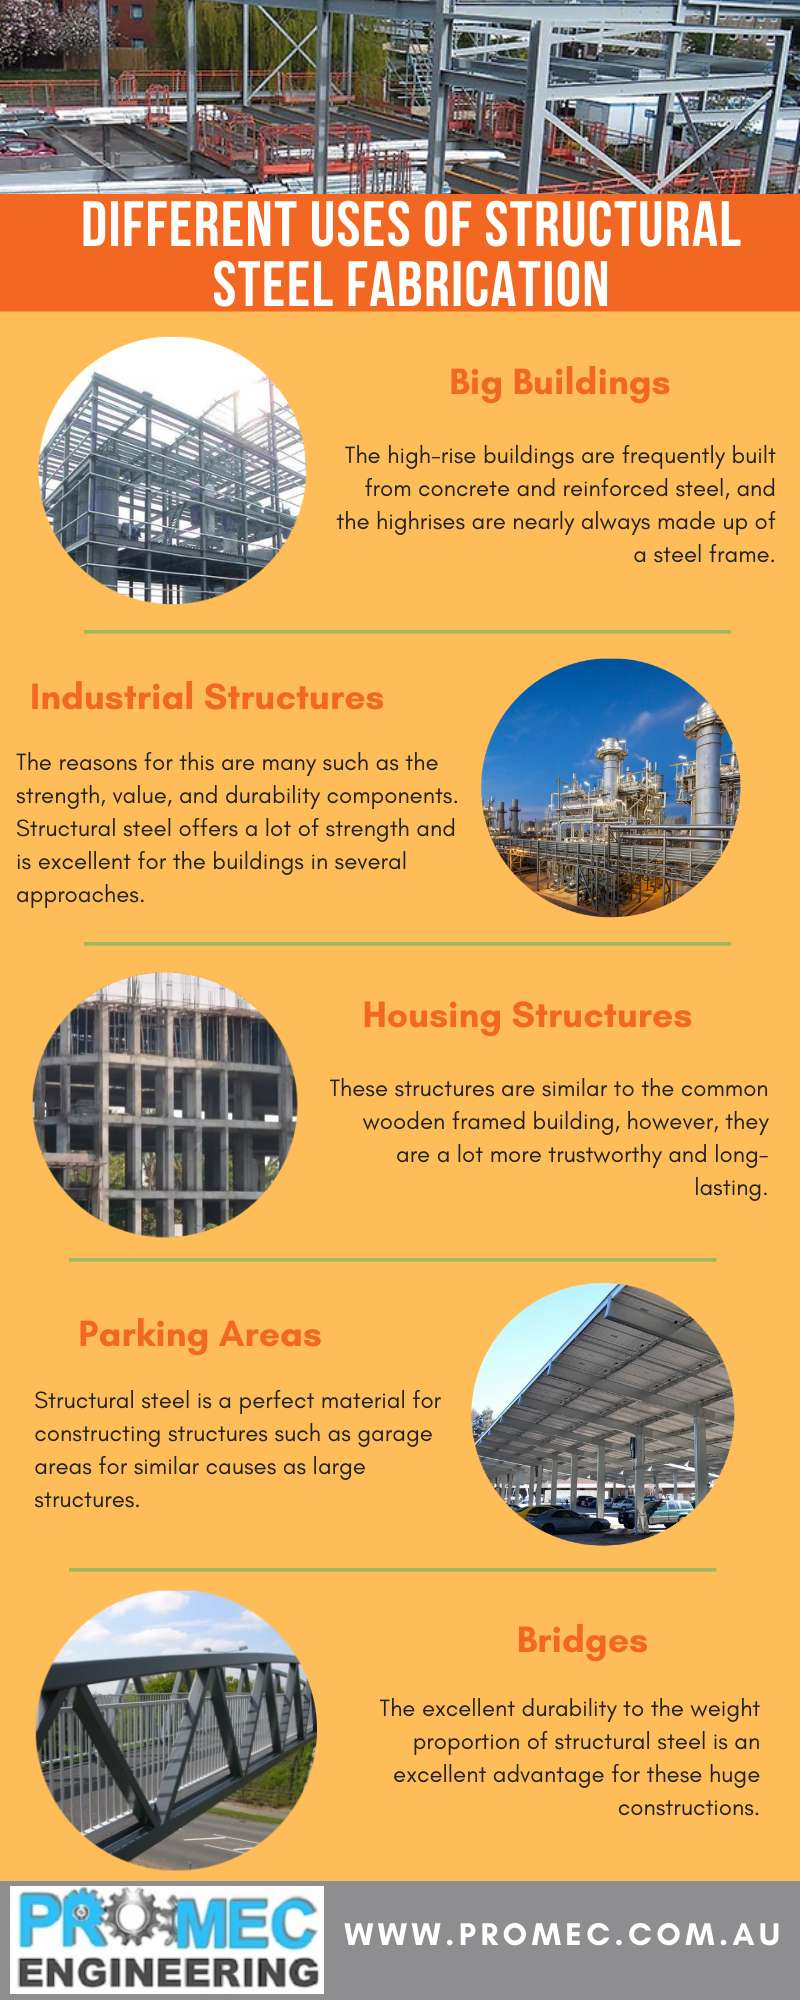 5 Common Uses of Structural Steel Fabrication